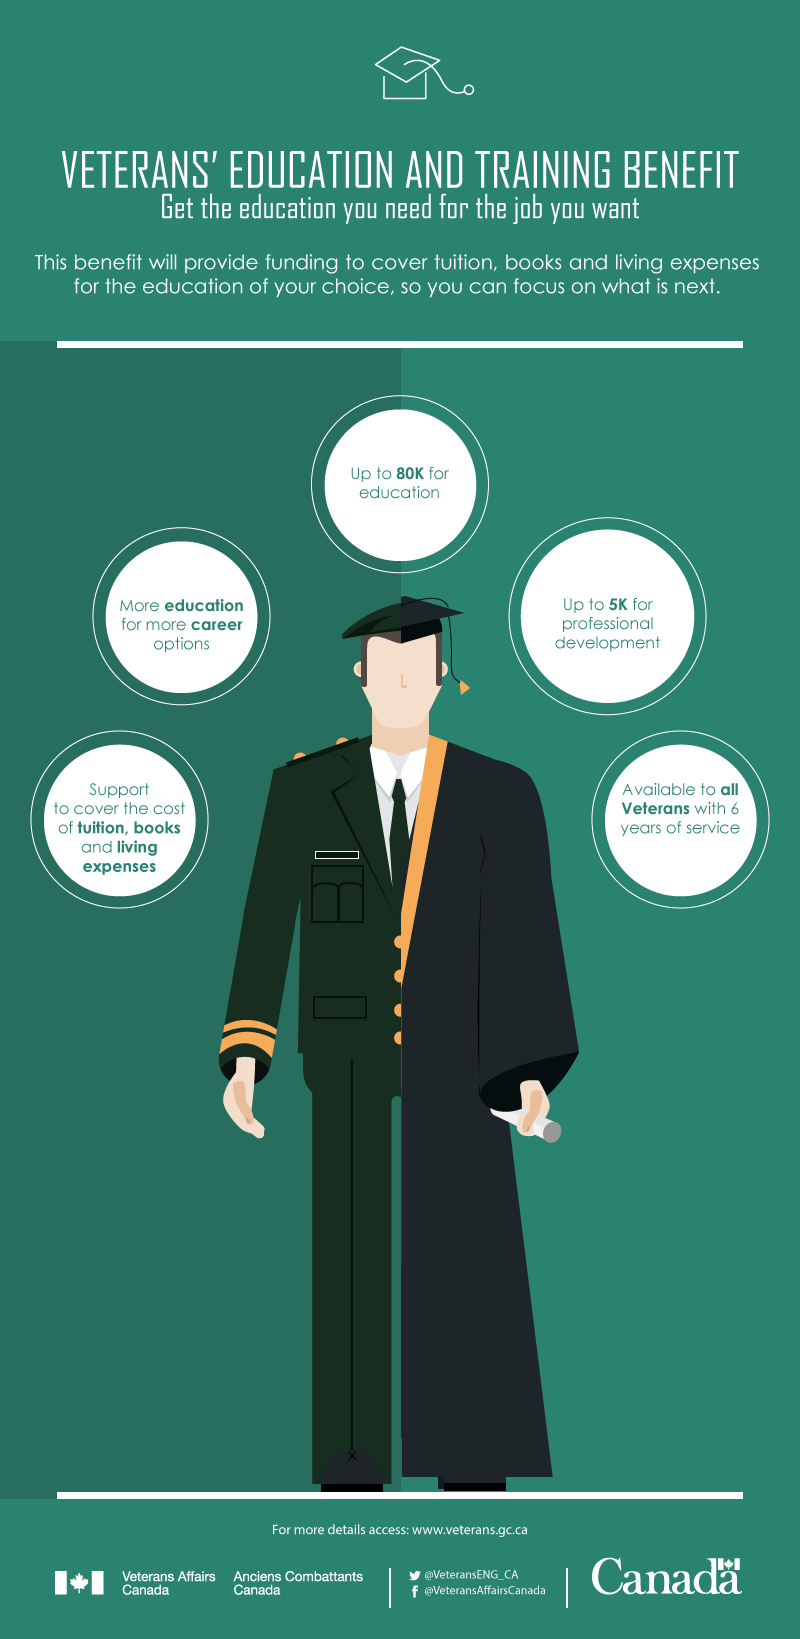 Veterans'-Education-and-Training-Benefit--English.png